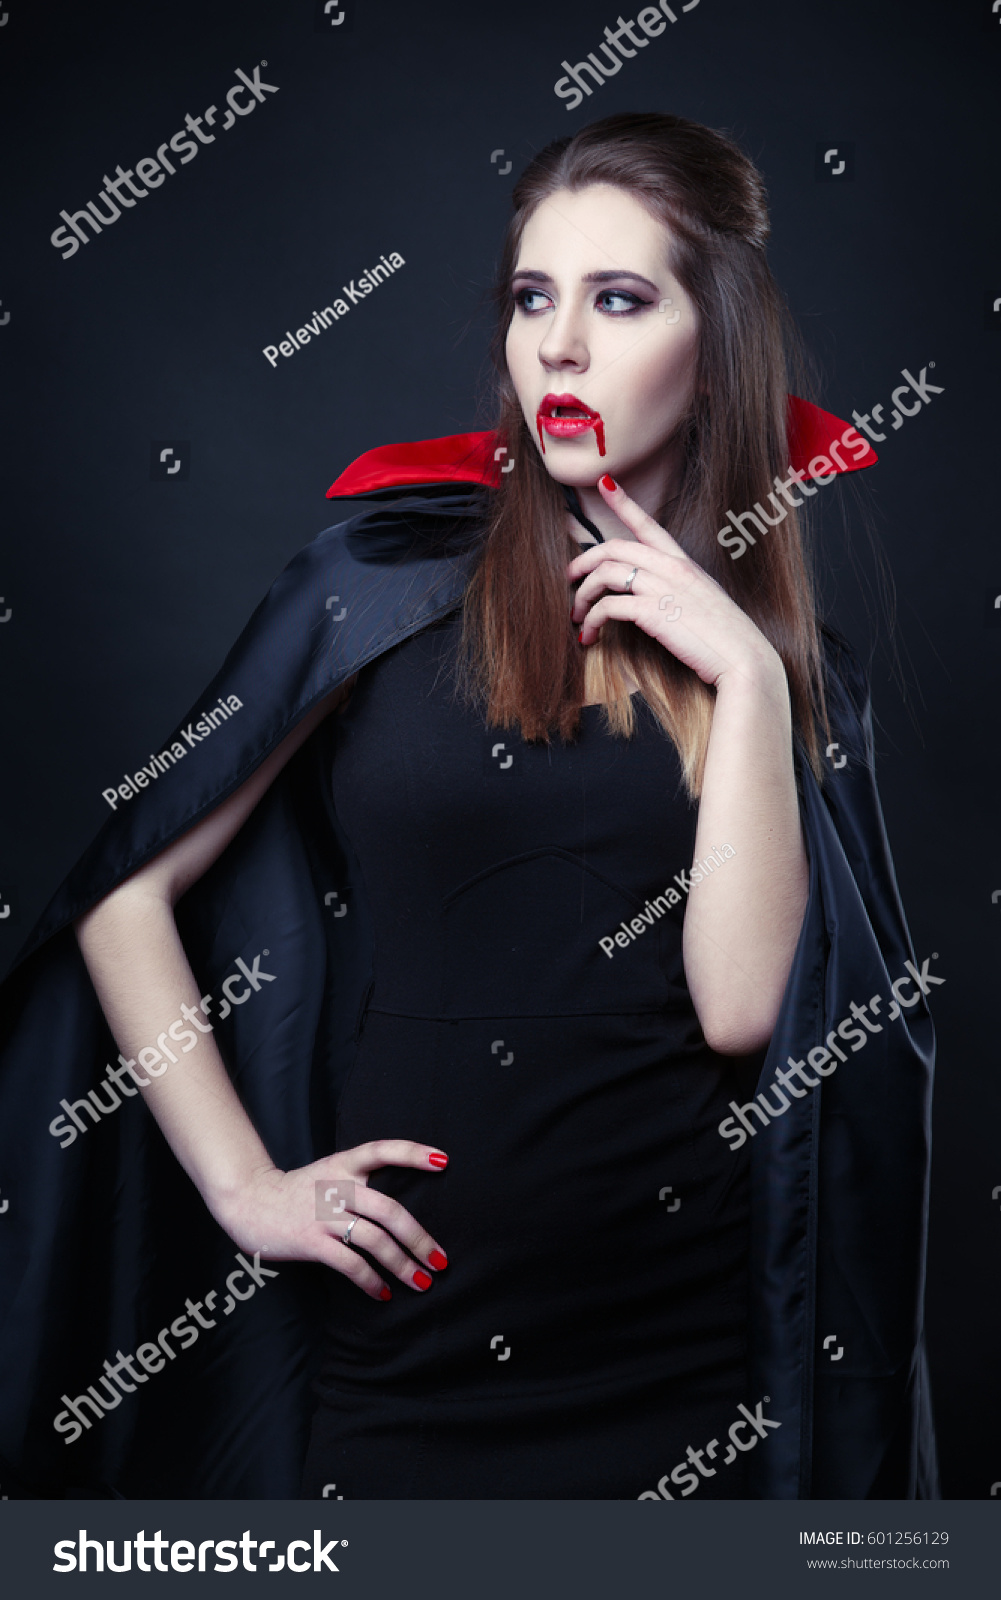 Evil Woman Halloween Costume